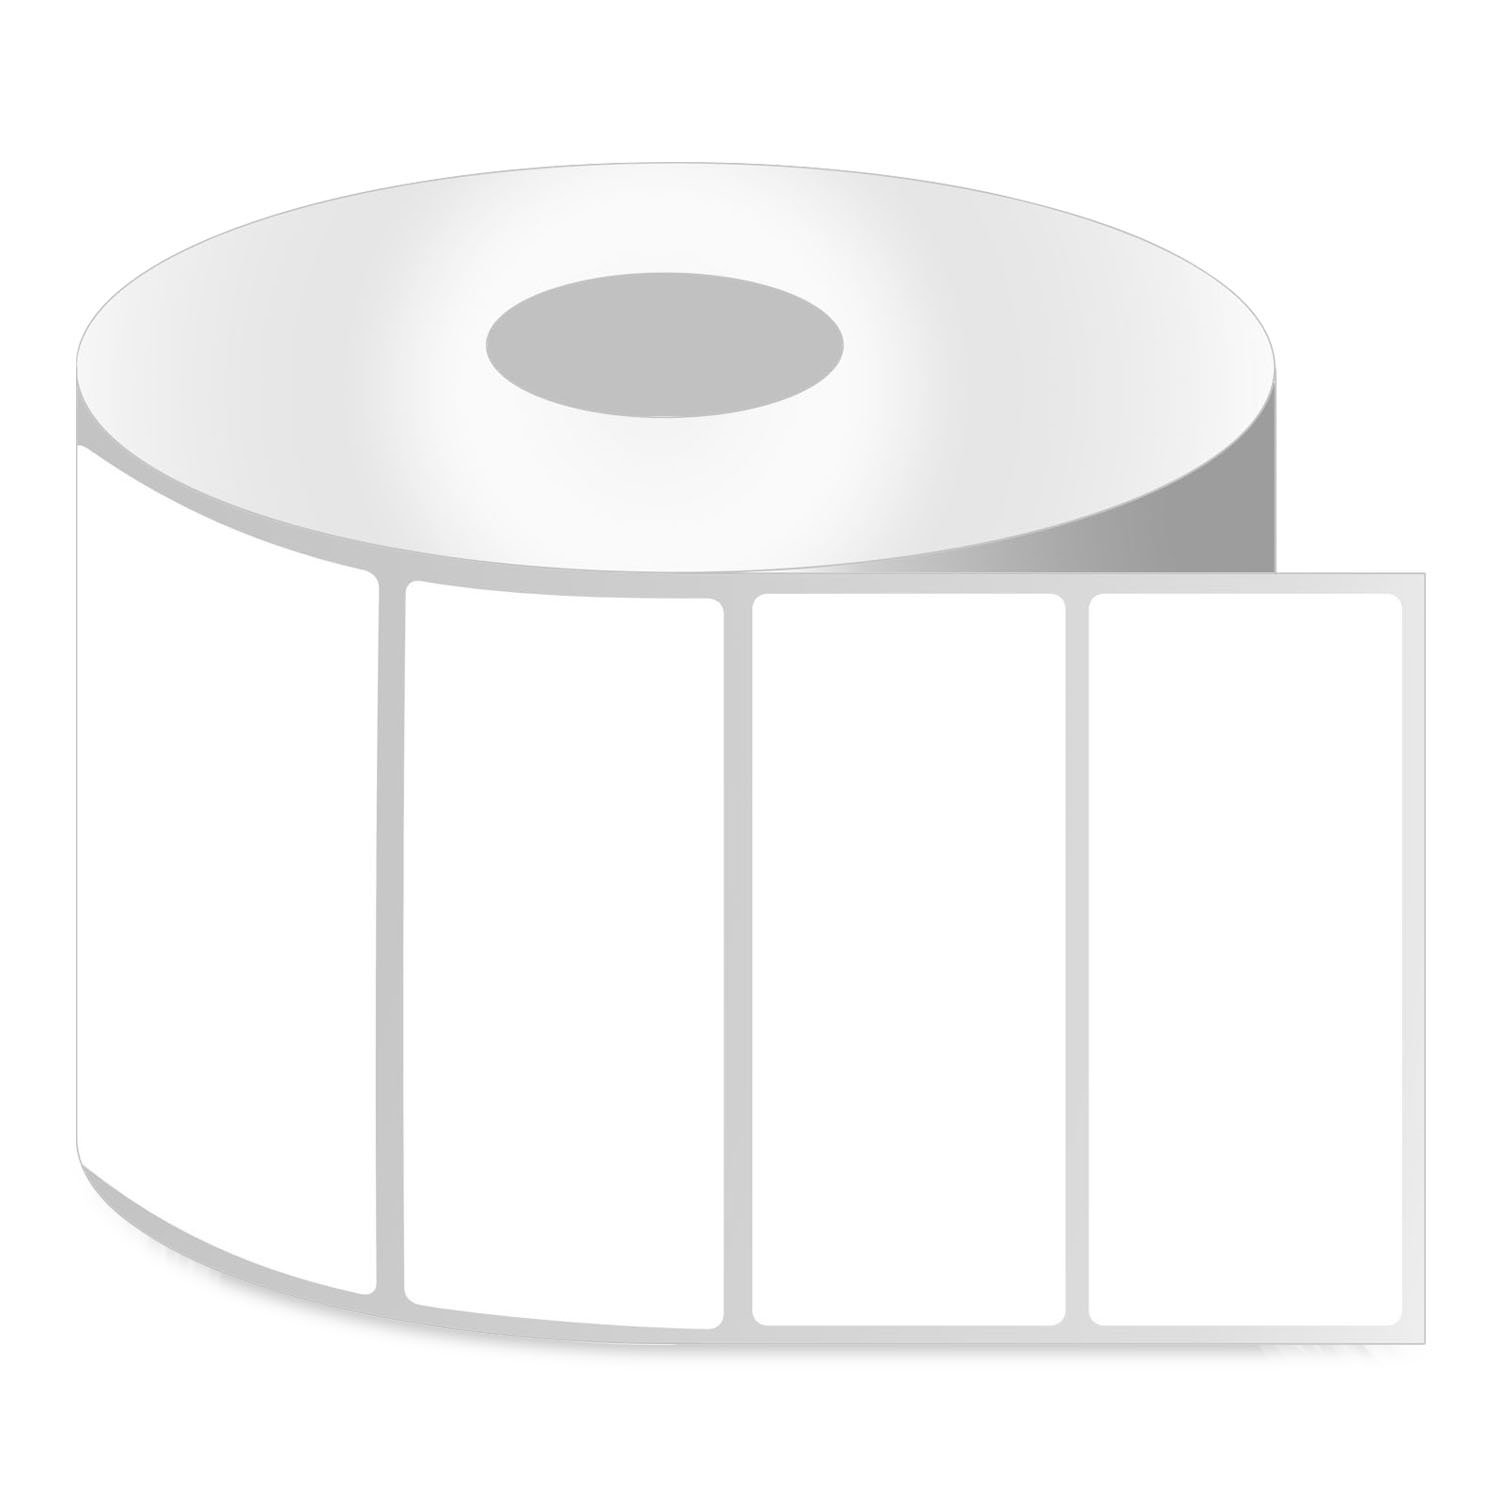 OfficeSmart Labels ZR1400200-4 x 2 Inch Removable Direct Thermal Labels, Compatible with Zebra Printers (11 Rolls, White, 750 Labels Per Roll, 1 inch Core) by OfficeSmartLabels